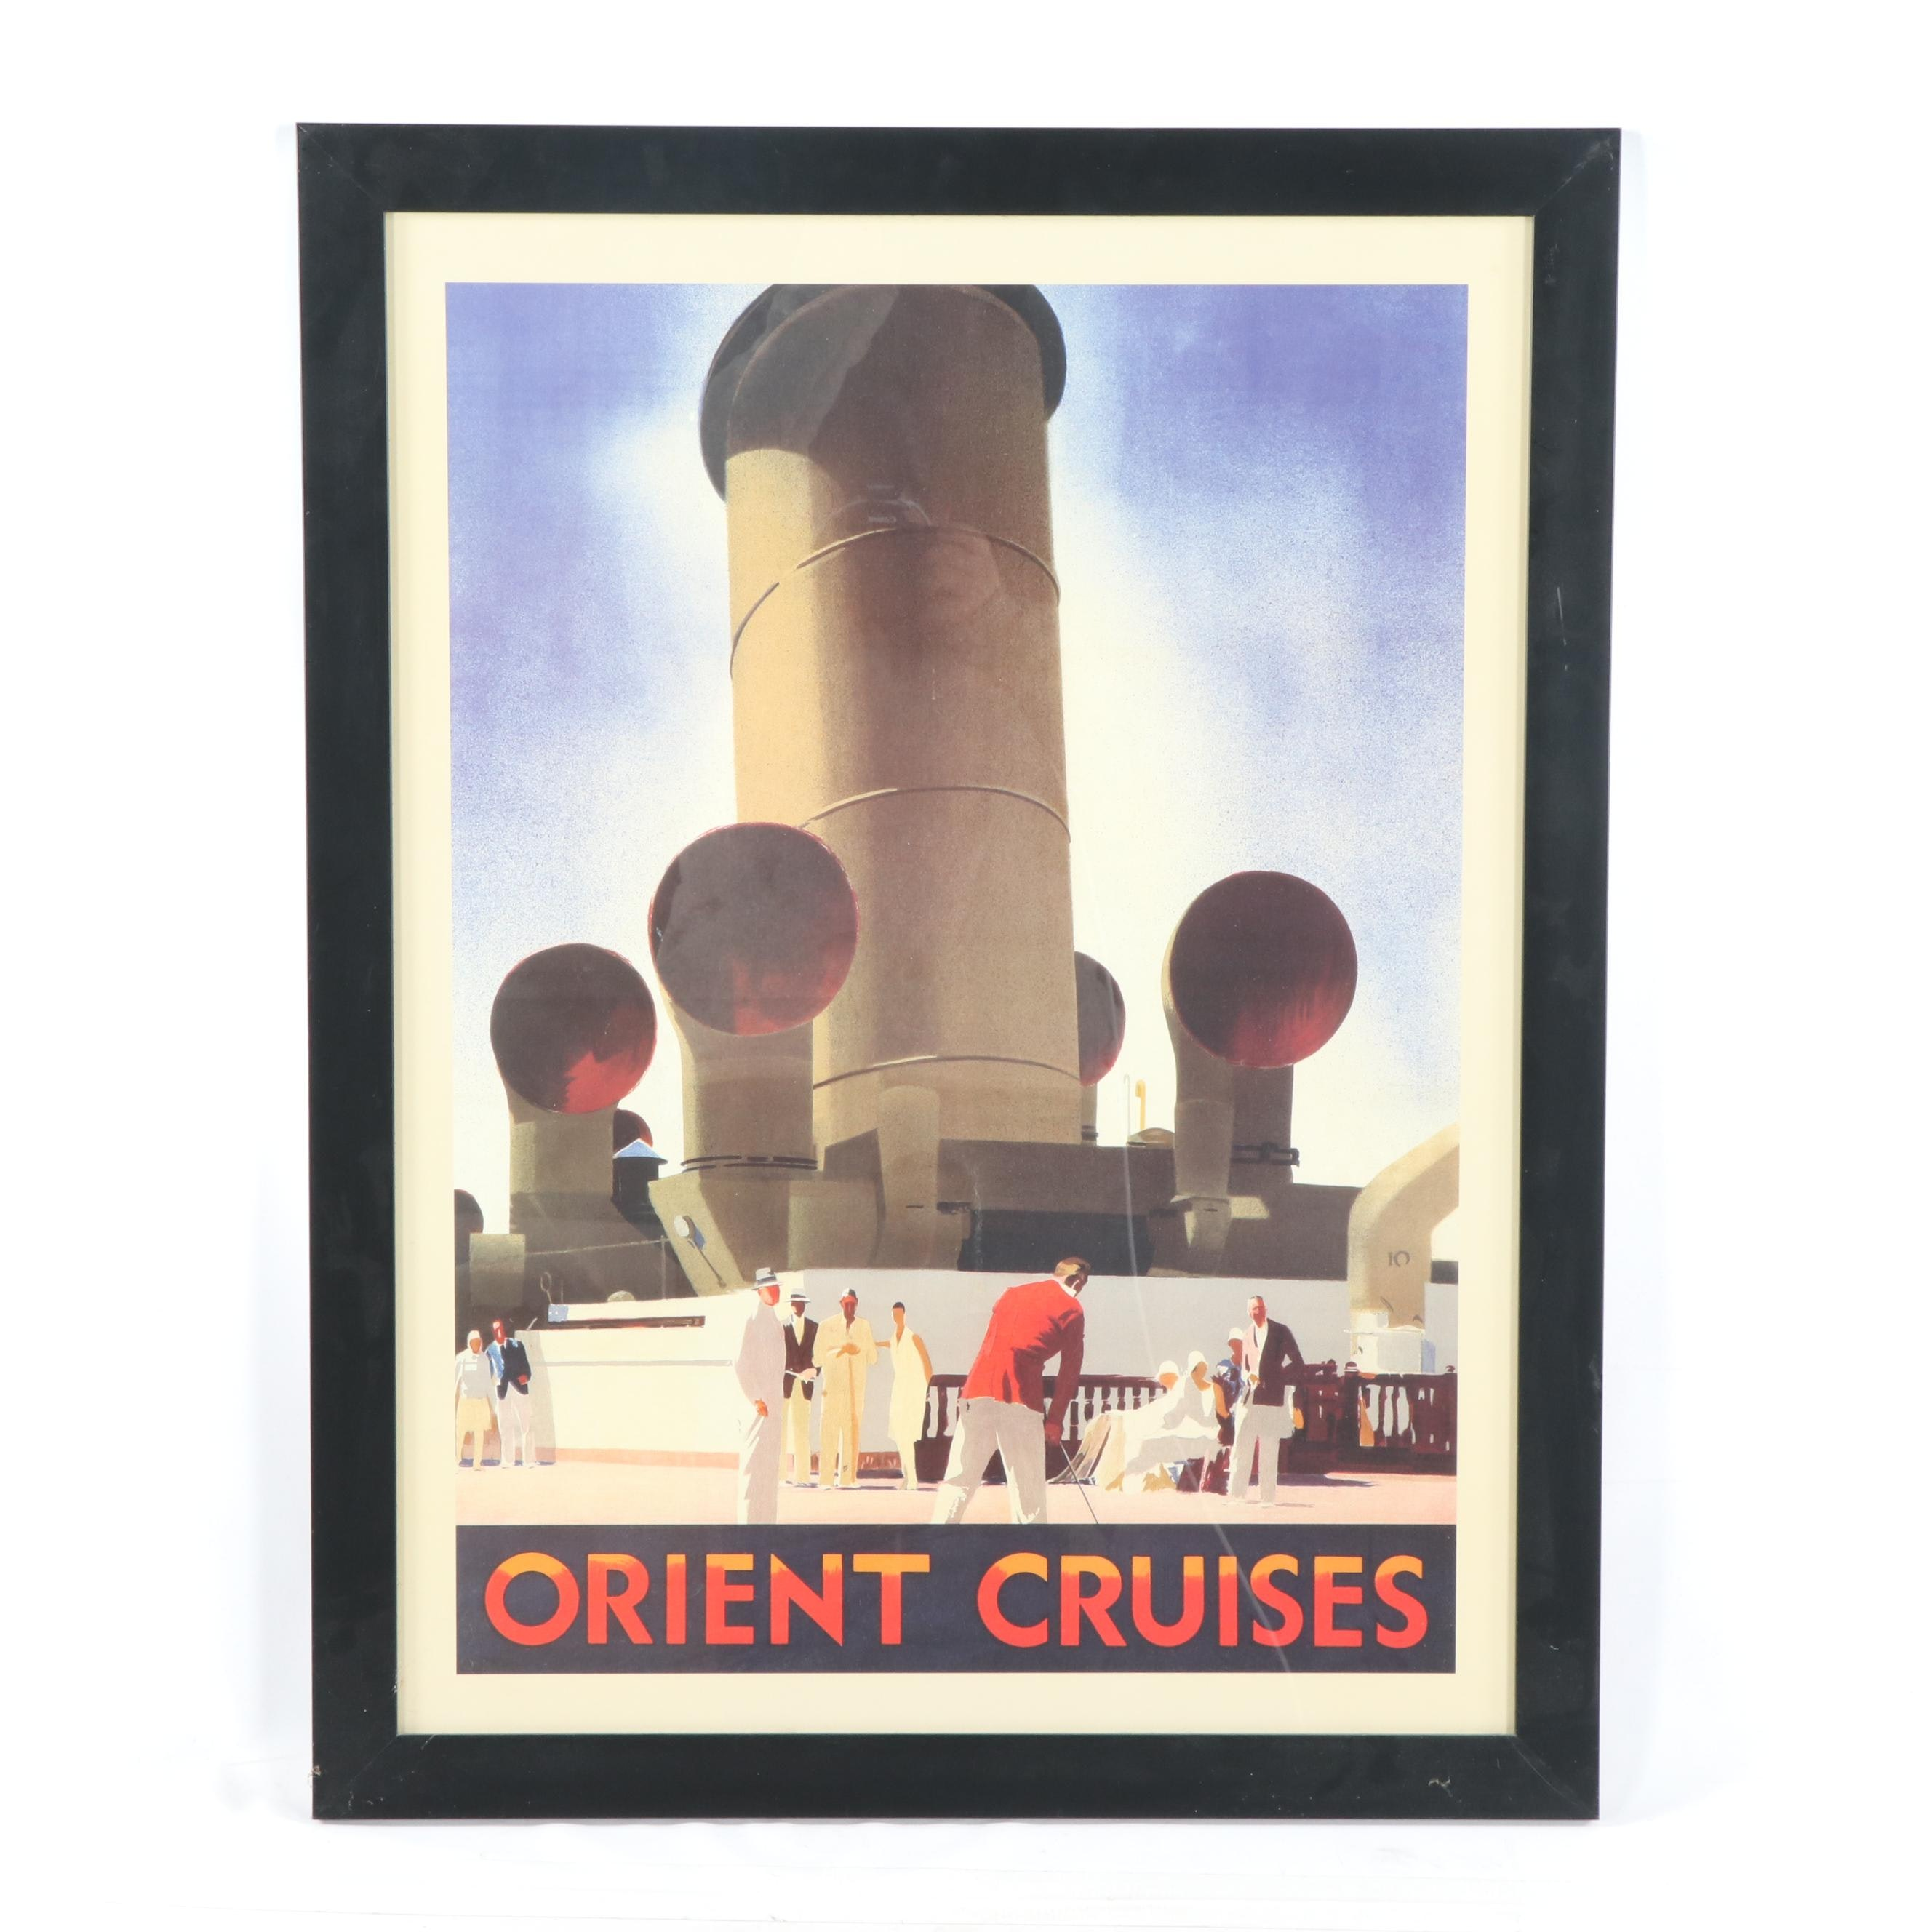 Orient Cruises Poster after Andrew Johnson